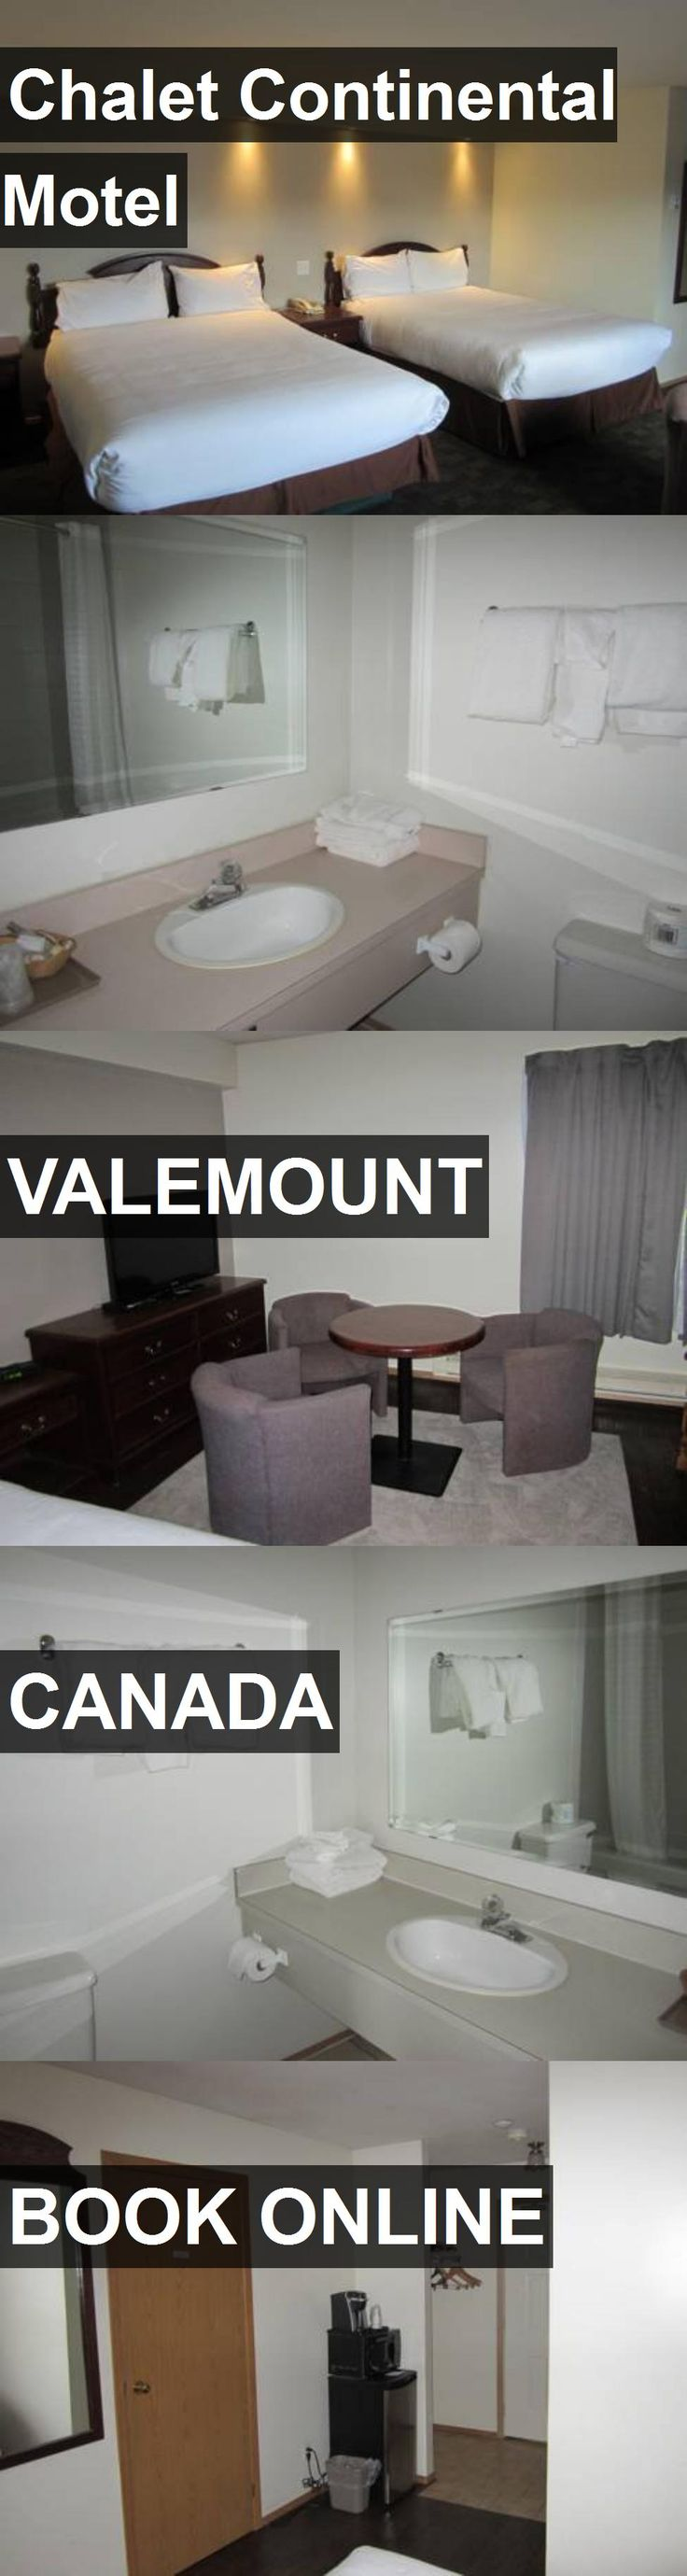 Hotel Chalet Continental Motel in Valemount, Canada. For more information, photos, reviews and best prices please follow the link. #Canada #Valemount #travel #vacation #hotel